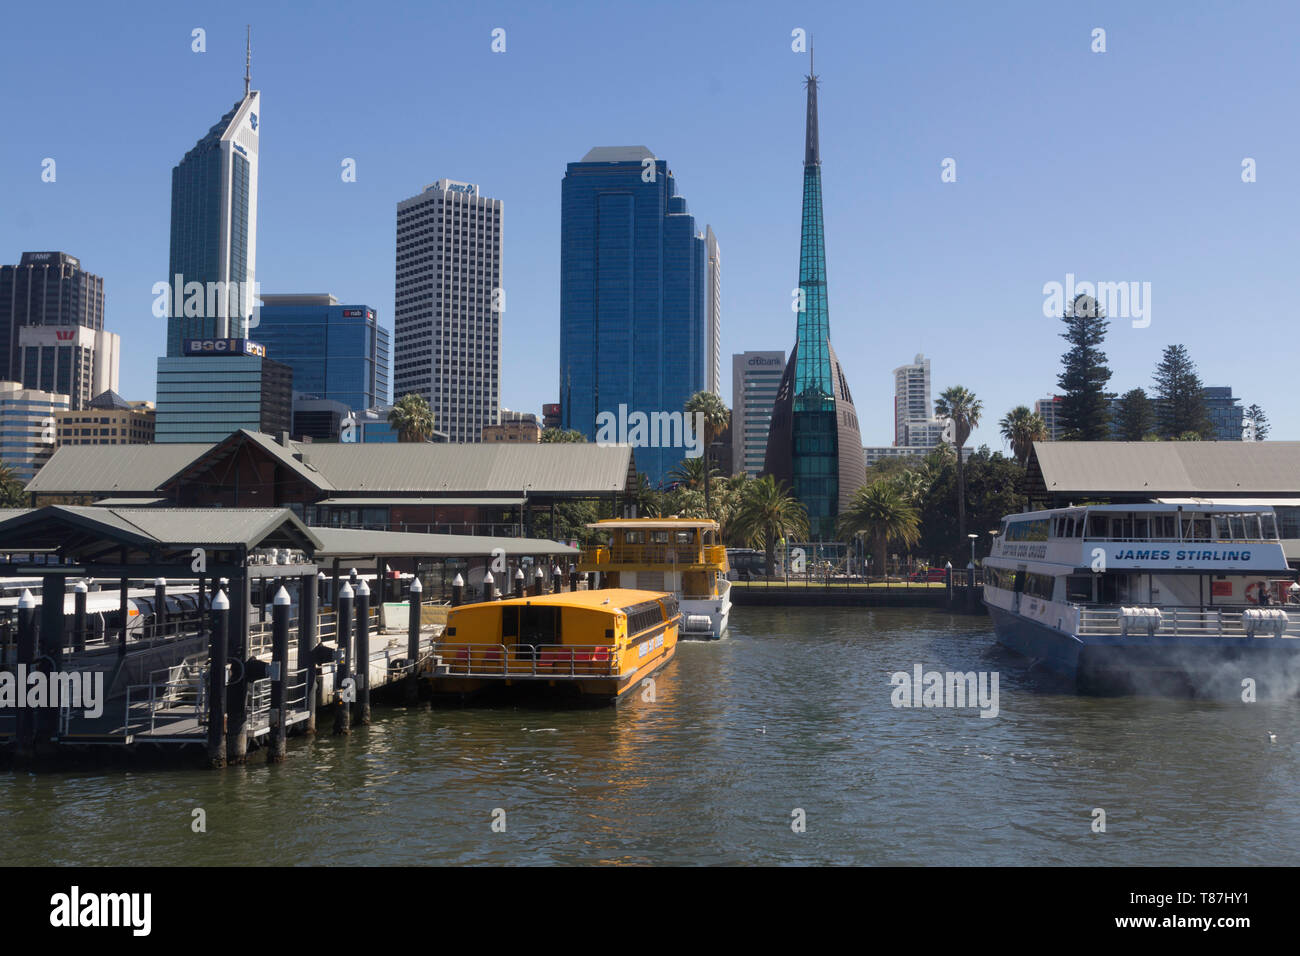 Perth, Western Australia, Australia - 21/01//2013 : View of the financial area, offices and commercial buildings and skyscrapers of the city of Perth - Stock Image